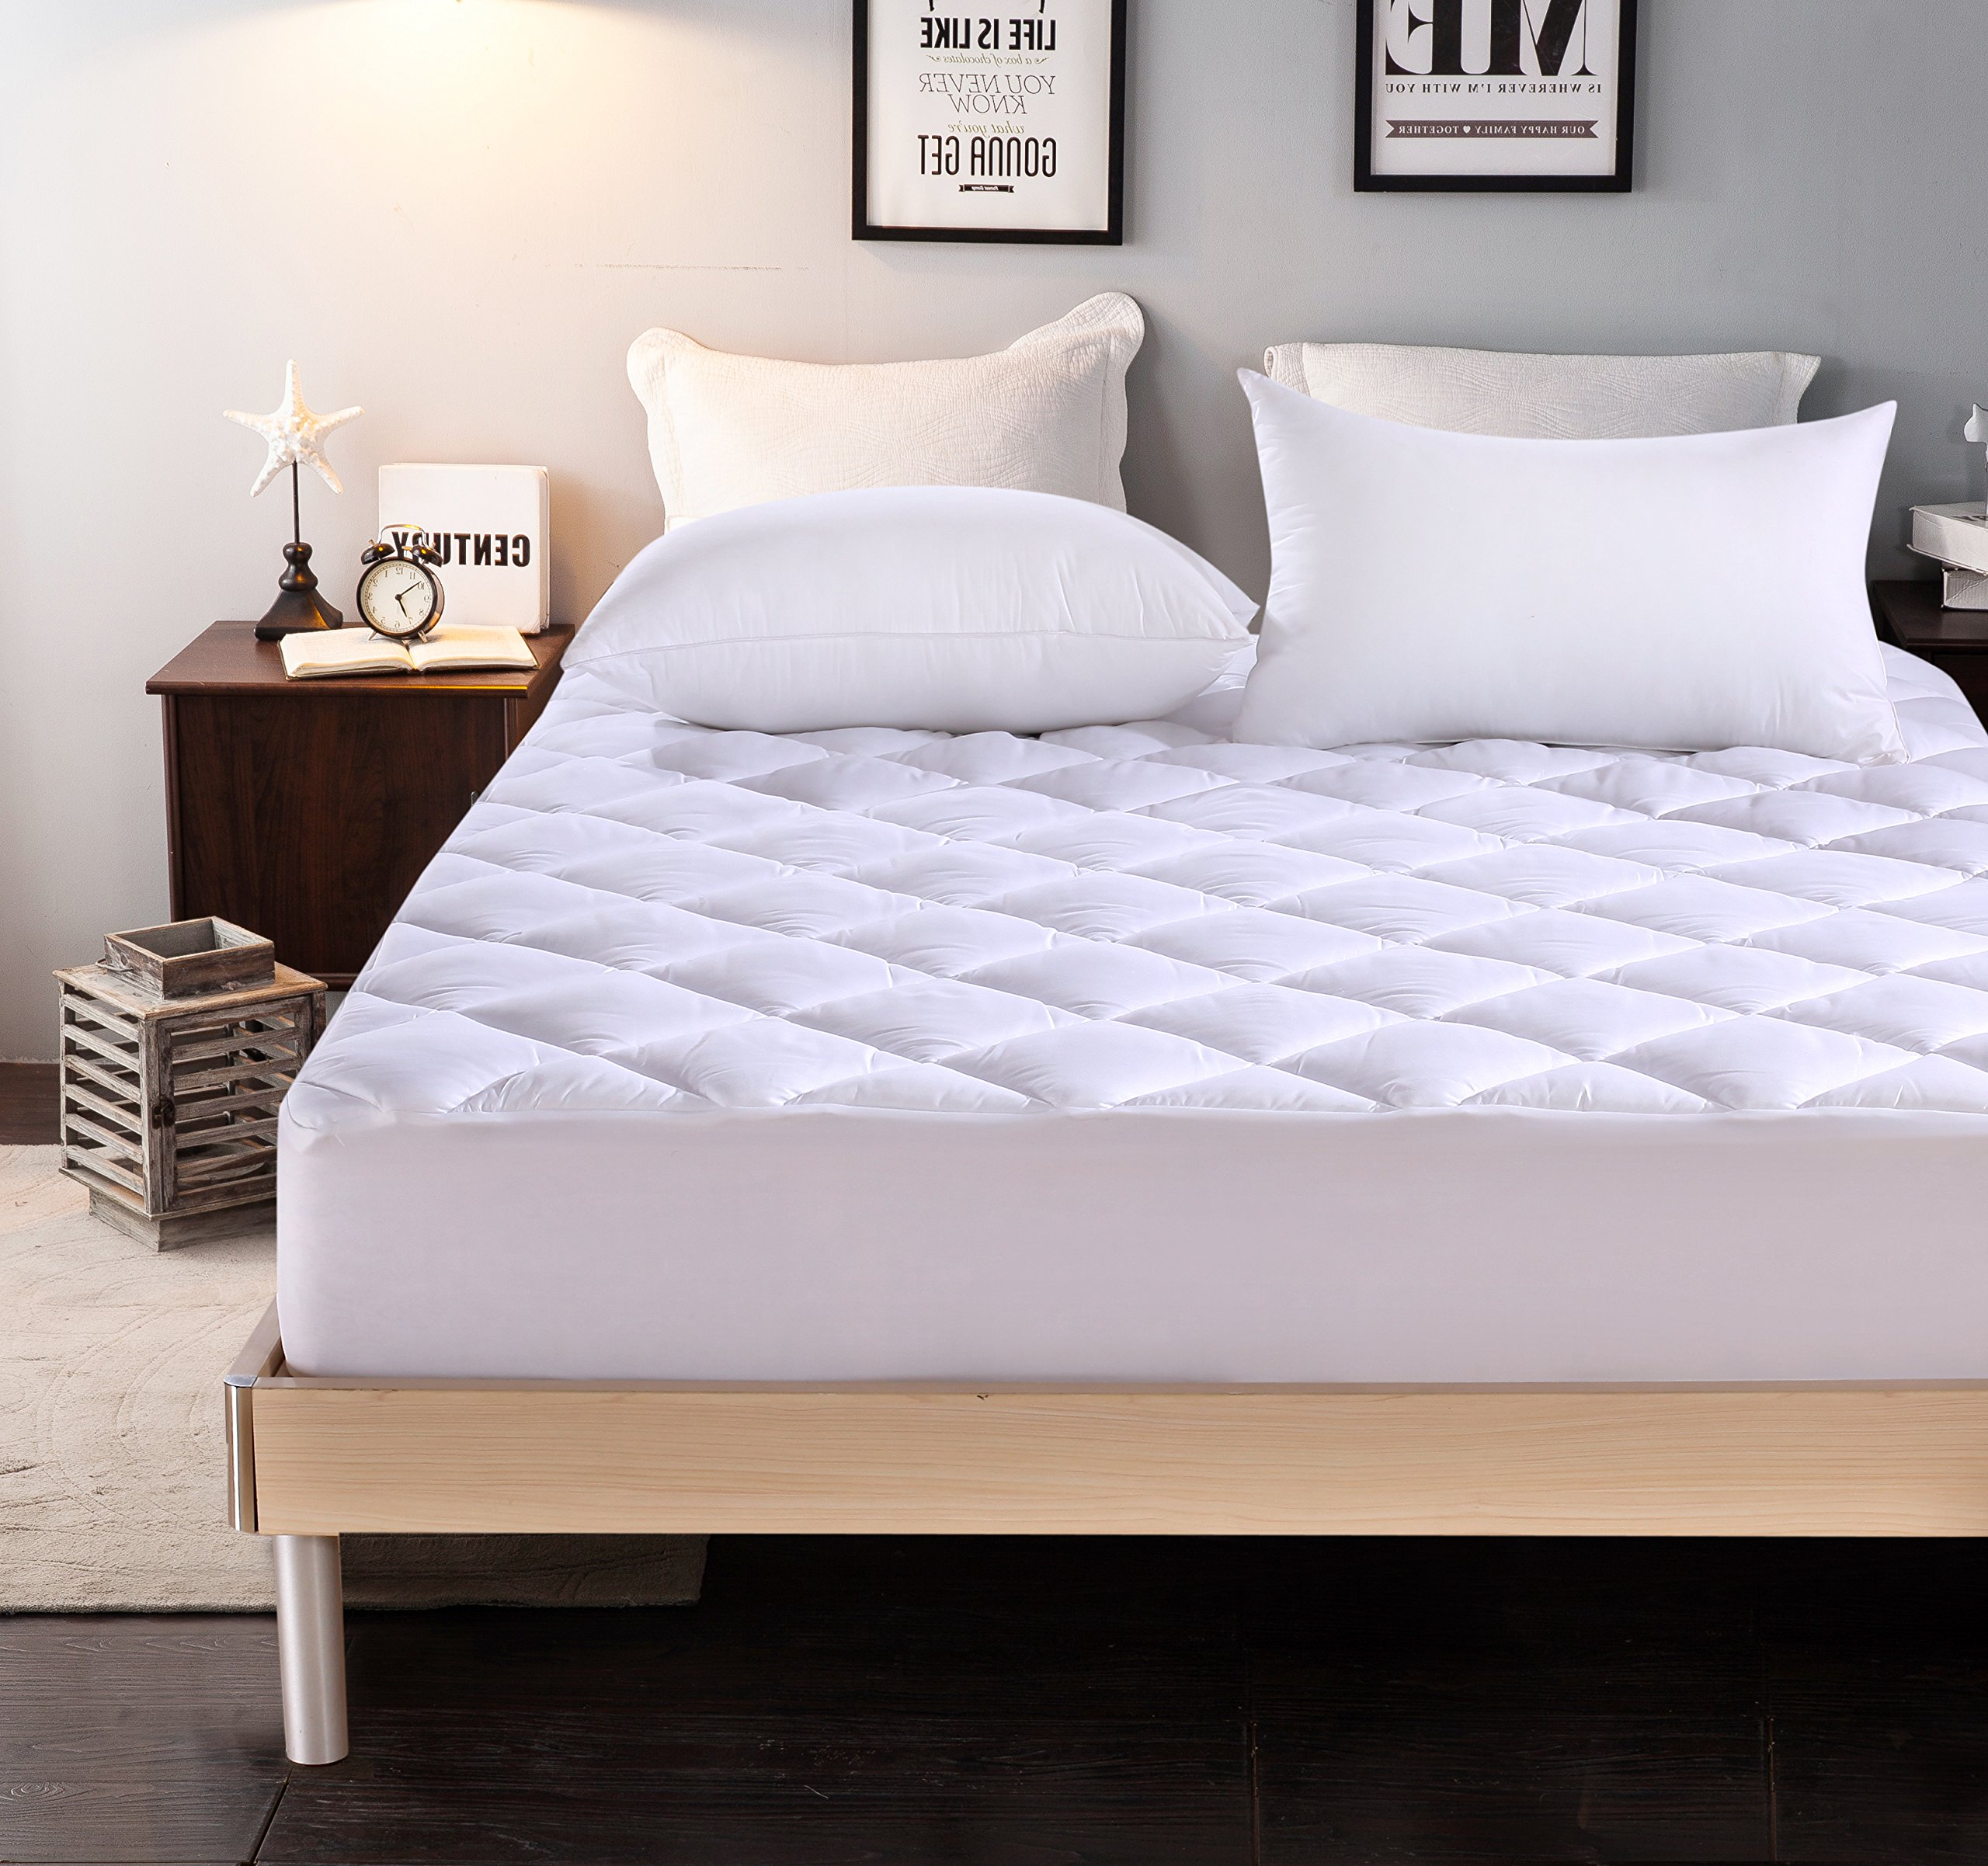 Everest EXTRA THICK Mattress Pad Queen size 60''x80''+18 Hypoallergenic Quilted Mattress Topper Deep Pocket Stretchable Skirt, Extra Plush 15oz DOWN ALTERNATIVE Fill,Superior 5 Star Hotel Quality